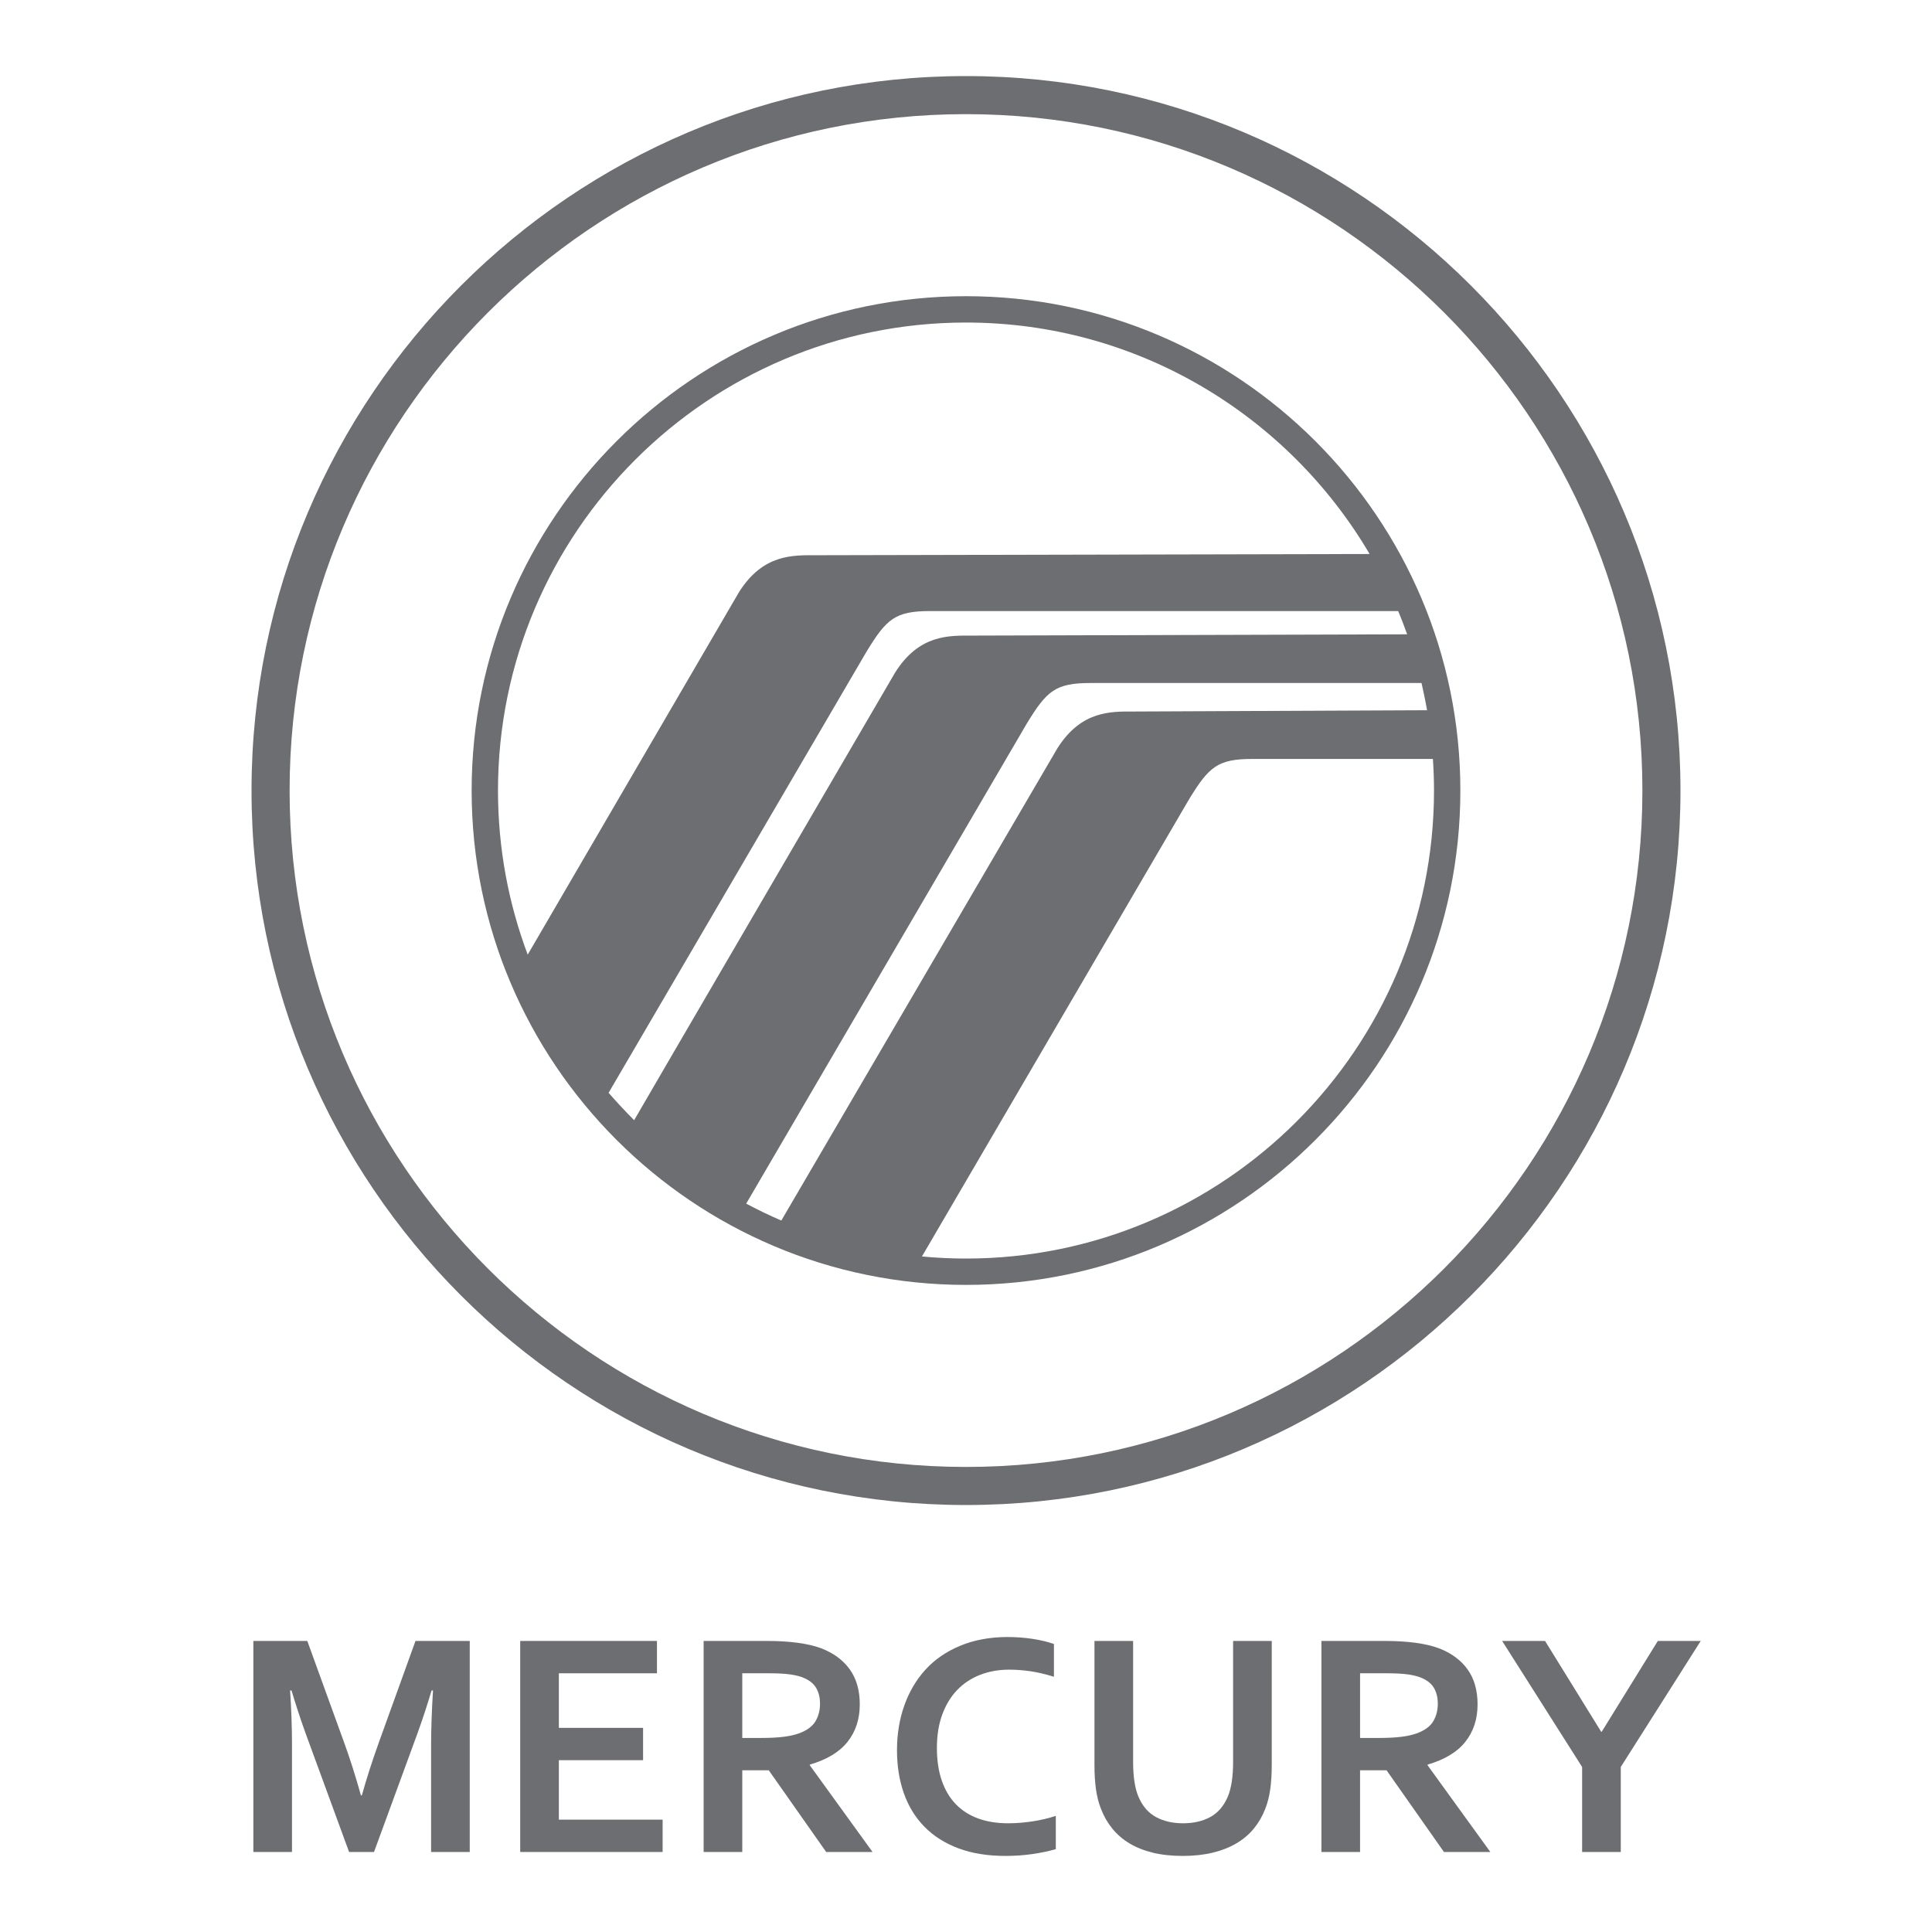 mercury logo  hd png  meaning  information